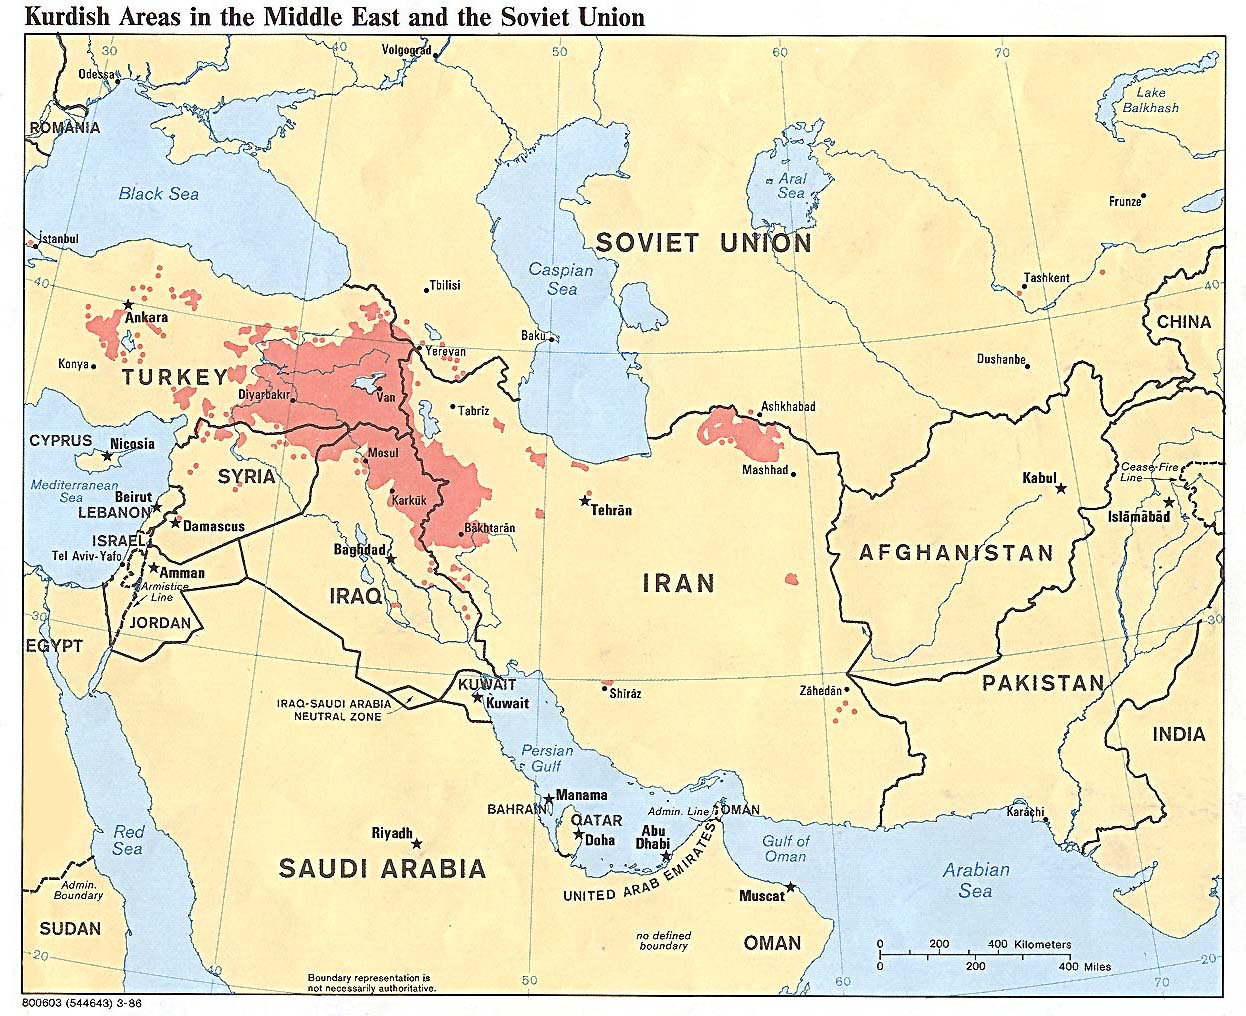 Iraq Maps - Perry-Castañeda Map Collection - UT Liry Online Satellite Maps Of The Biblical Middle East on biblical middle east map jordan, biblical cities of the bible, biblical maps then and now, biblical map of jordan, biblical map vs today's map, biblical world map, biblical maps with modern map overlay, biblical antioch map, biblical maps of rome, biblical maps of egypt, biblical mediterranean map of crete, biblical middle east map overlay, biblical map of macedonia greece, biblical maps of turkey, biblical map of iraq, biblical maps of europe, biblical lands of israel, people from the middle east, biblical map of africa, biblical israel map,